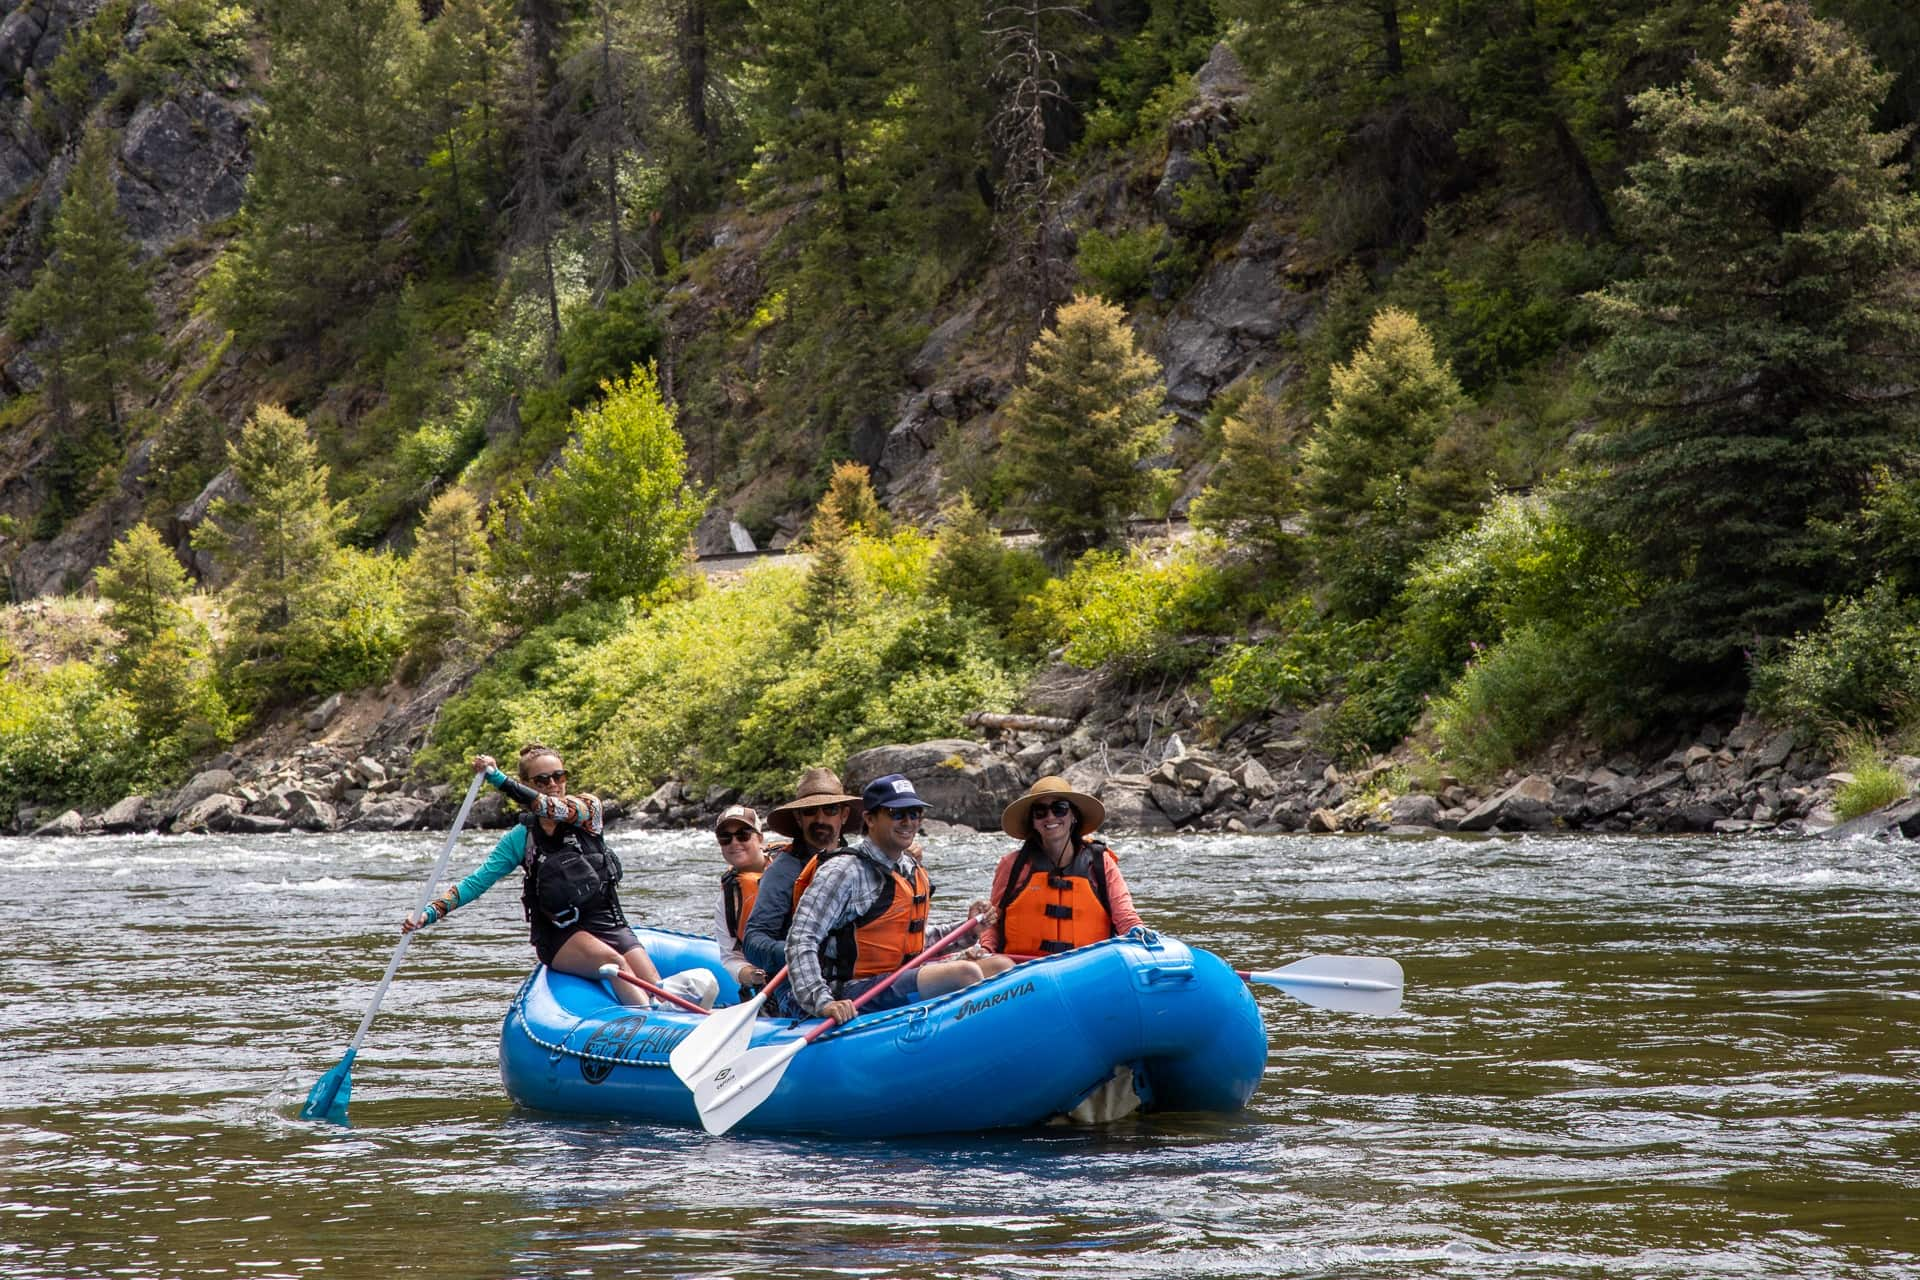 Whitewater rafting the Payette River in McCall, Idaho // An outdoor enthusiast's guide to the best hiking, biking, rafting, and more summer outdoor activities while visiting McCall, Idaho.